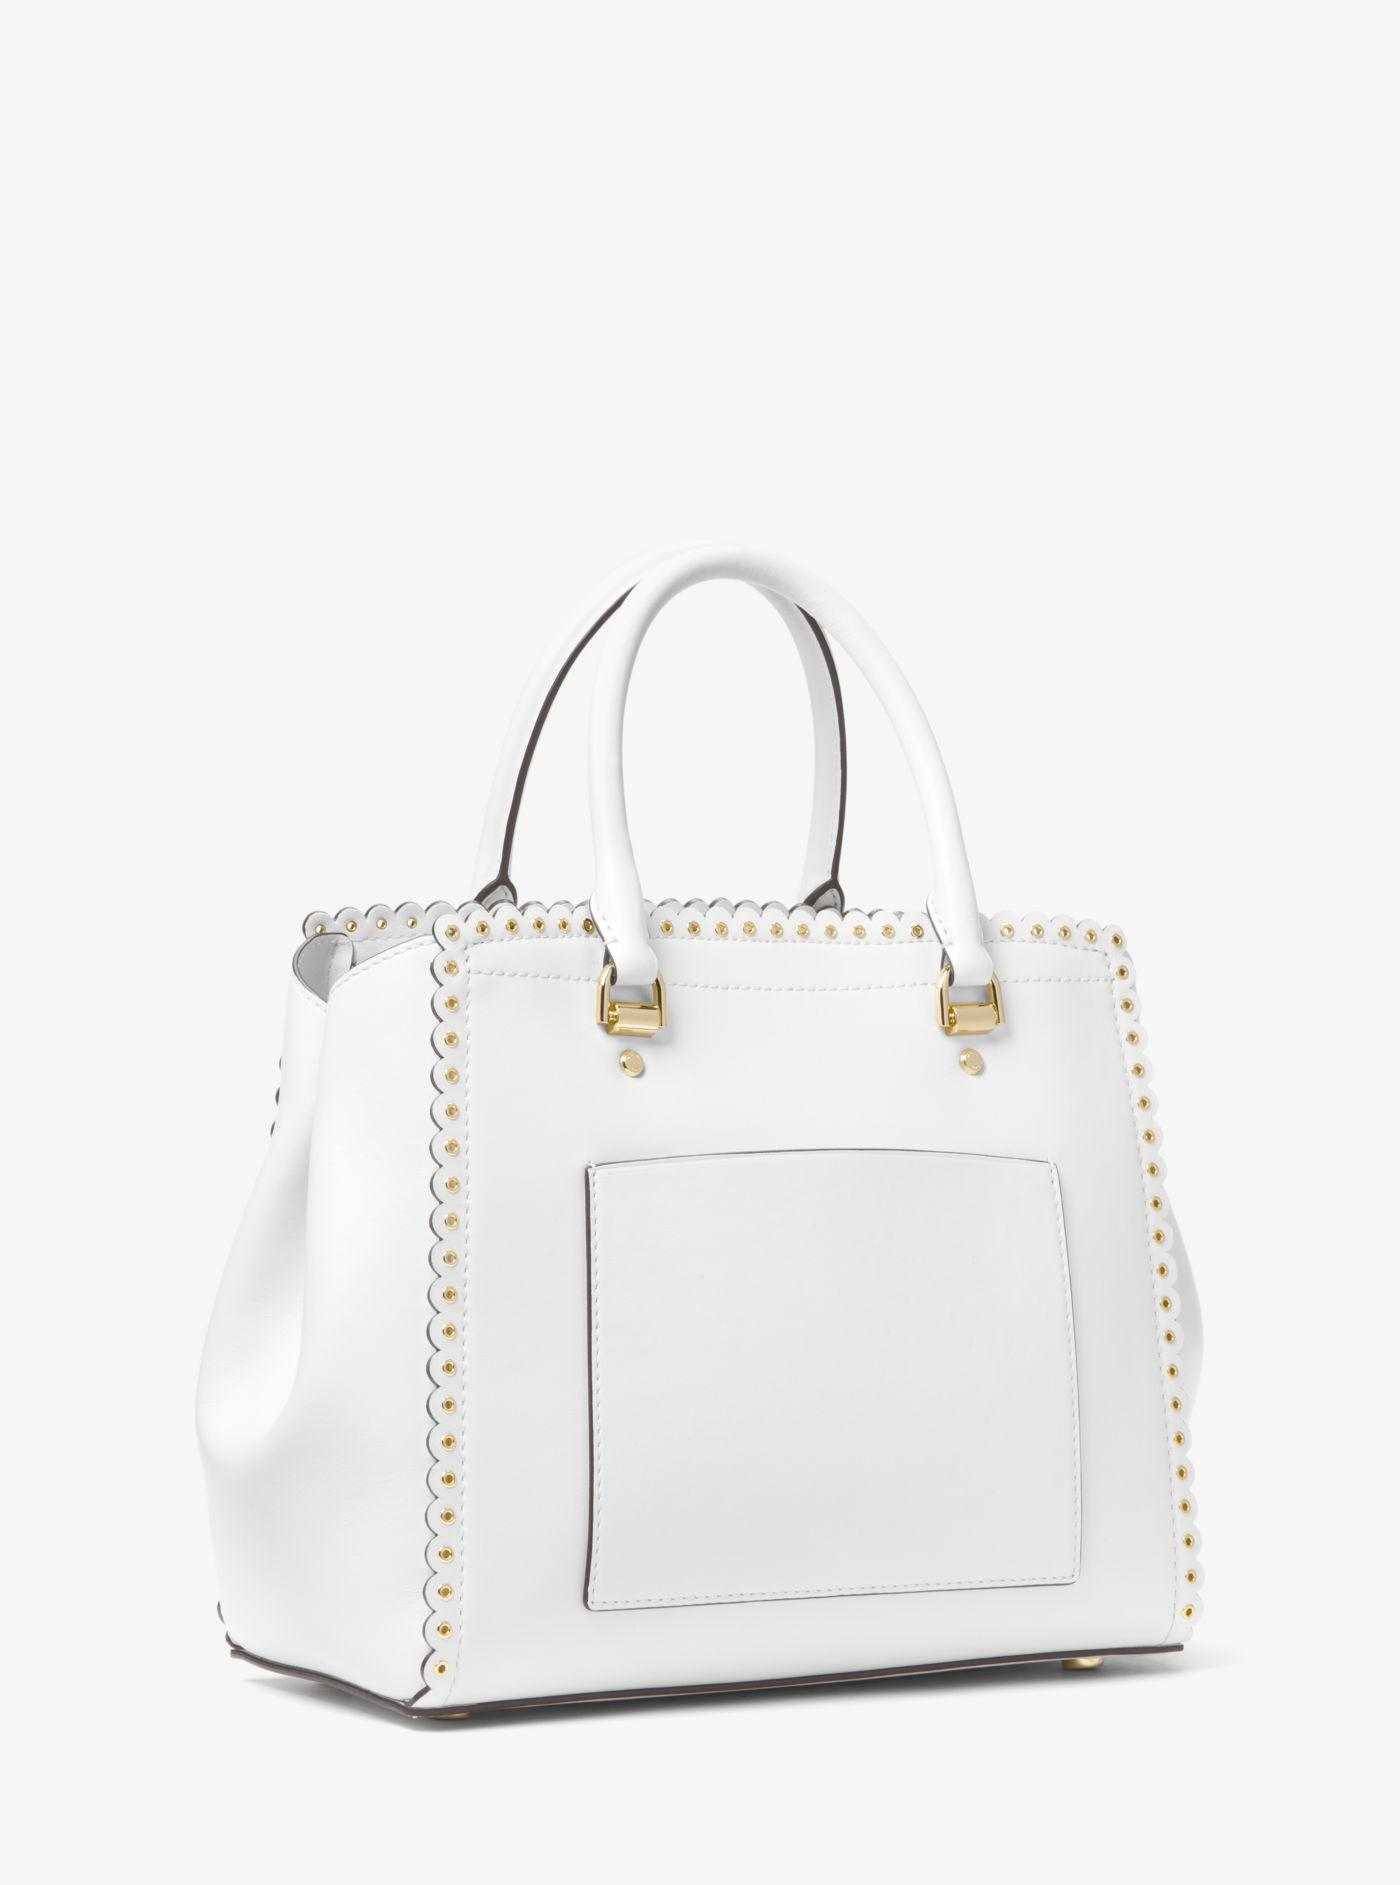 2a9b02234414 Lyst - Michael Kors Benning Large Scalloped Leather Satchel in White